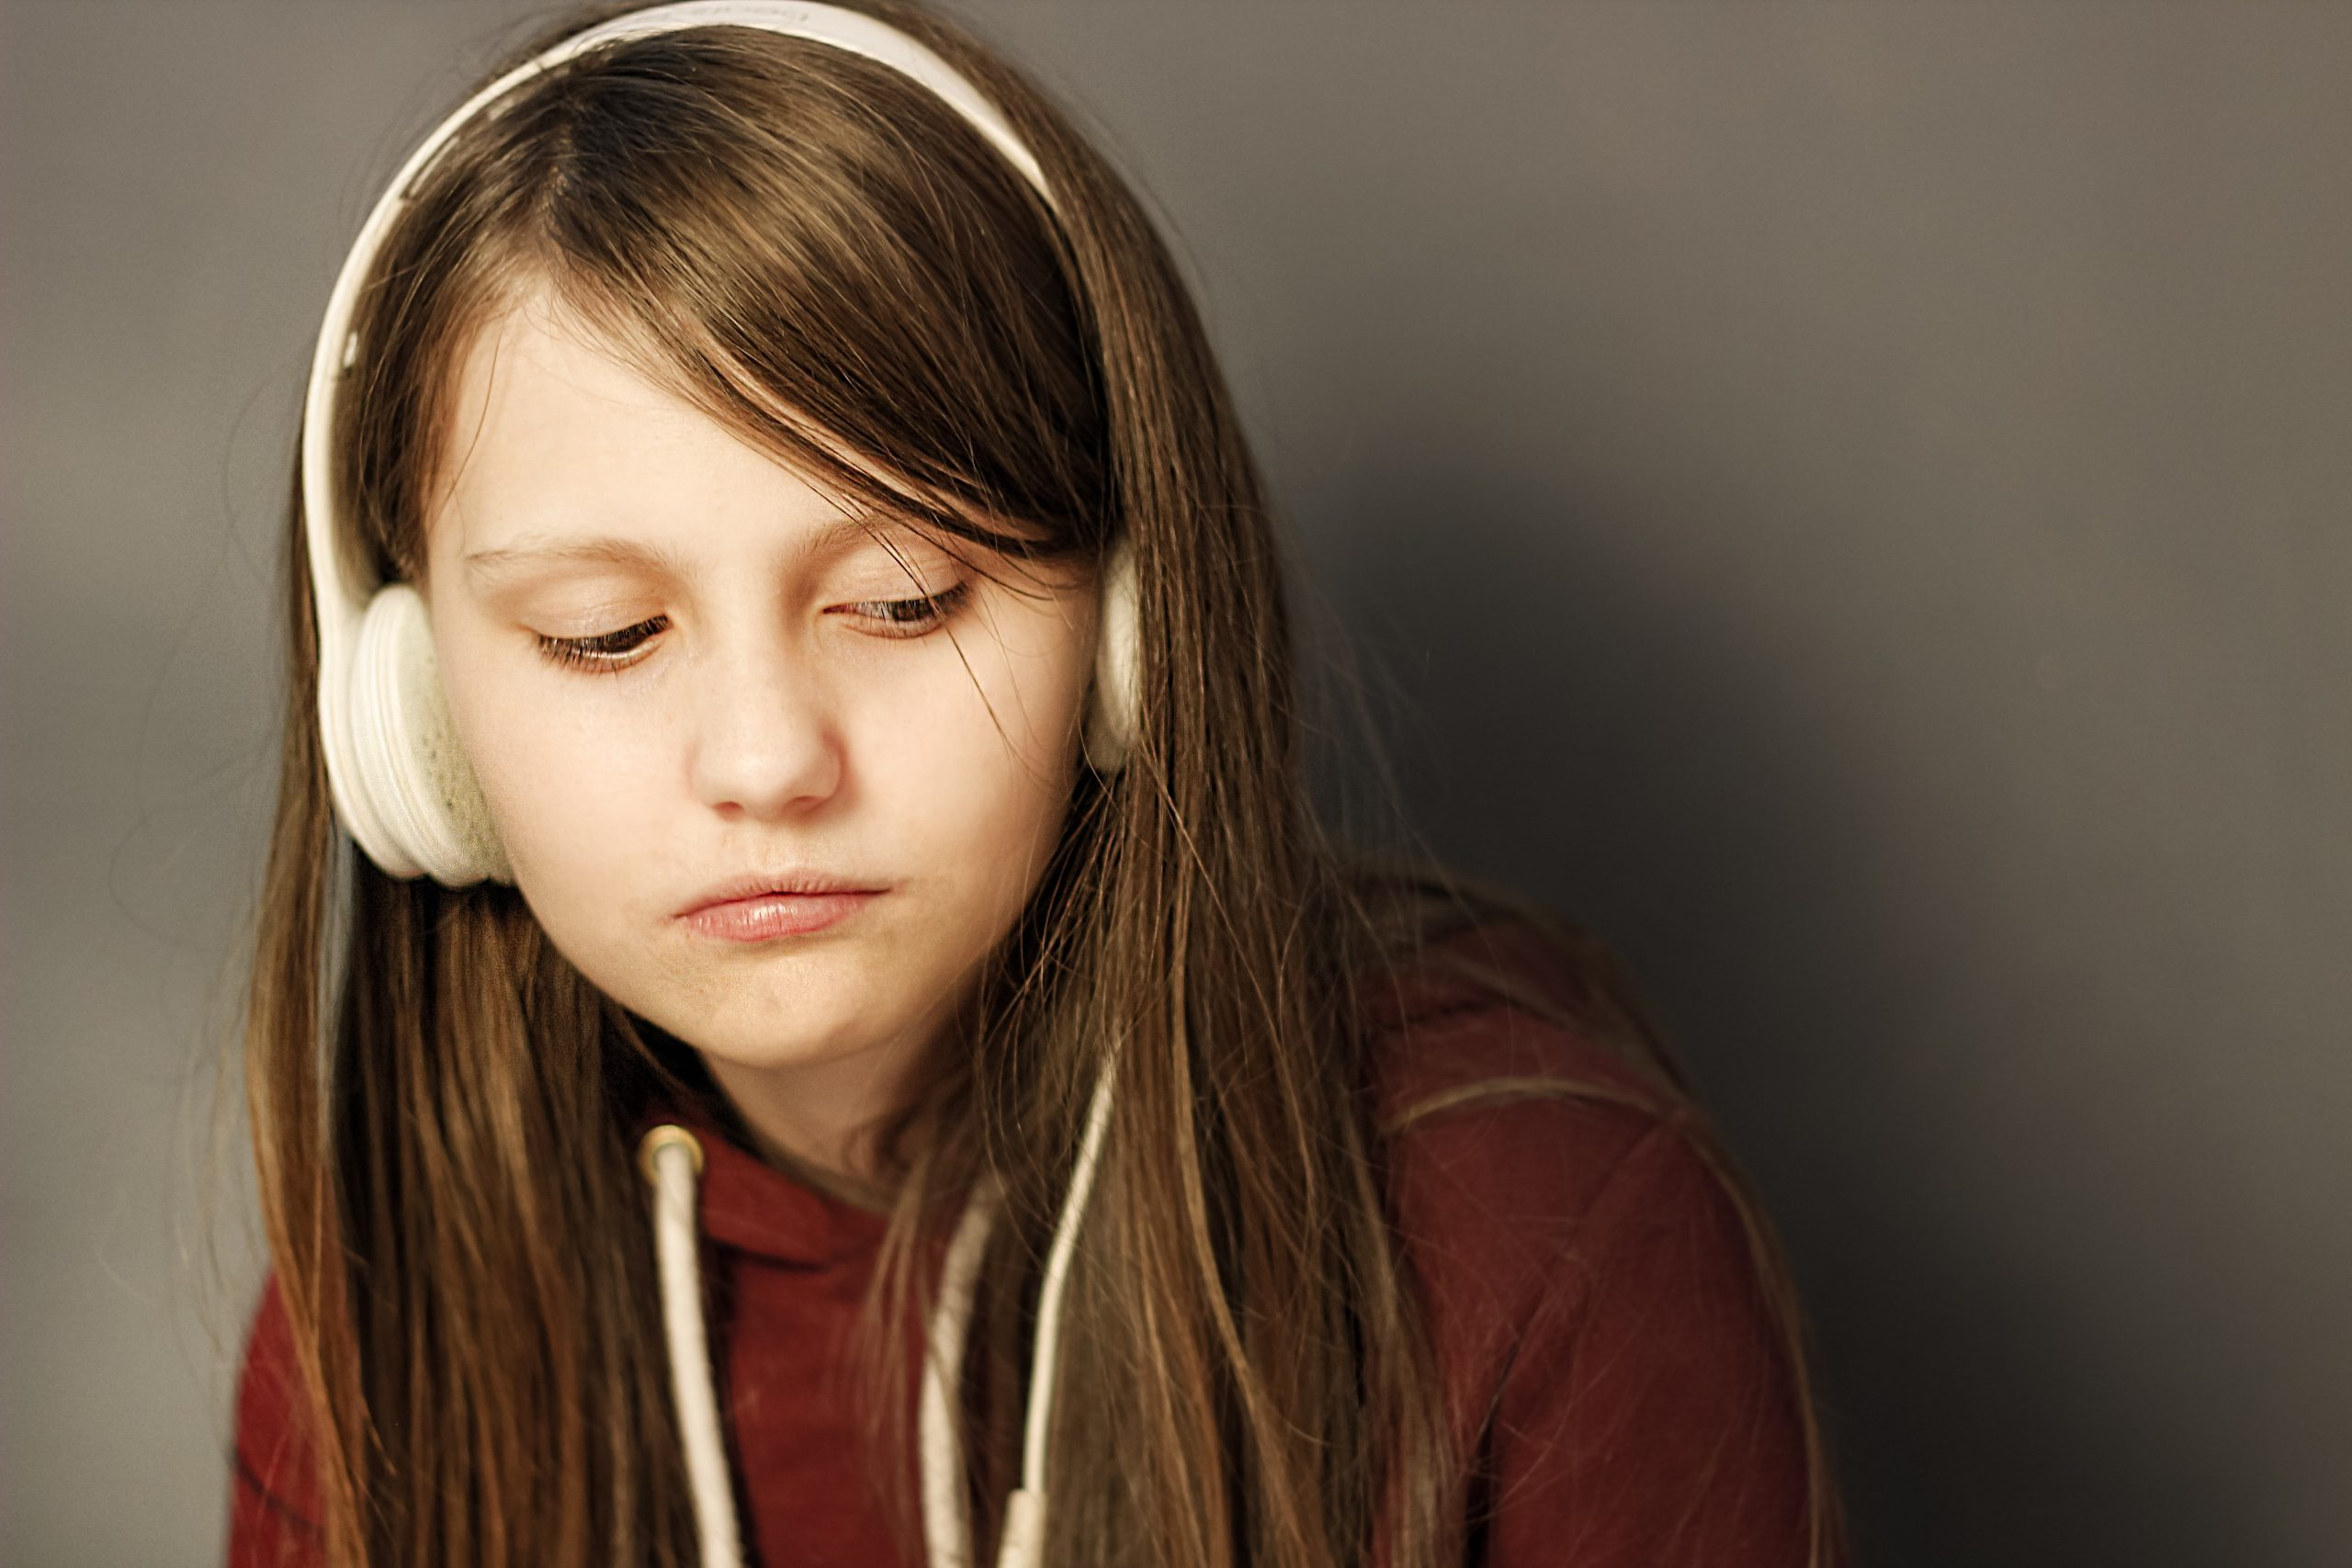 Young girl with dark hair and white headphones on looking sad